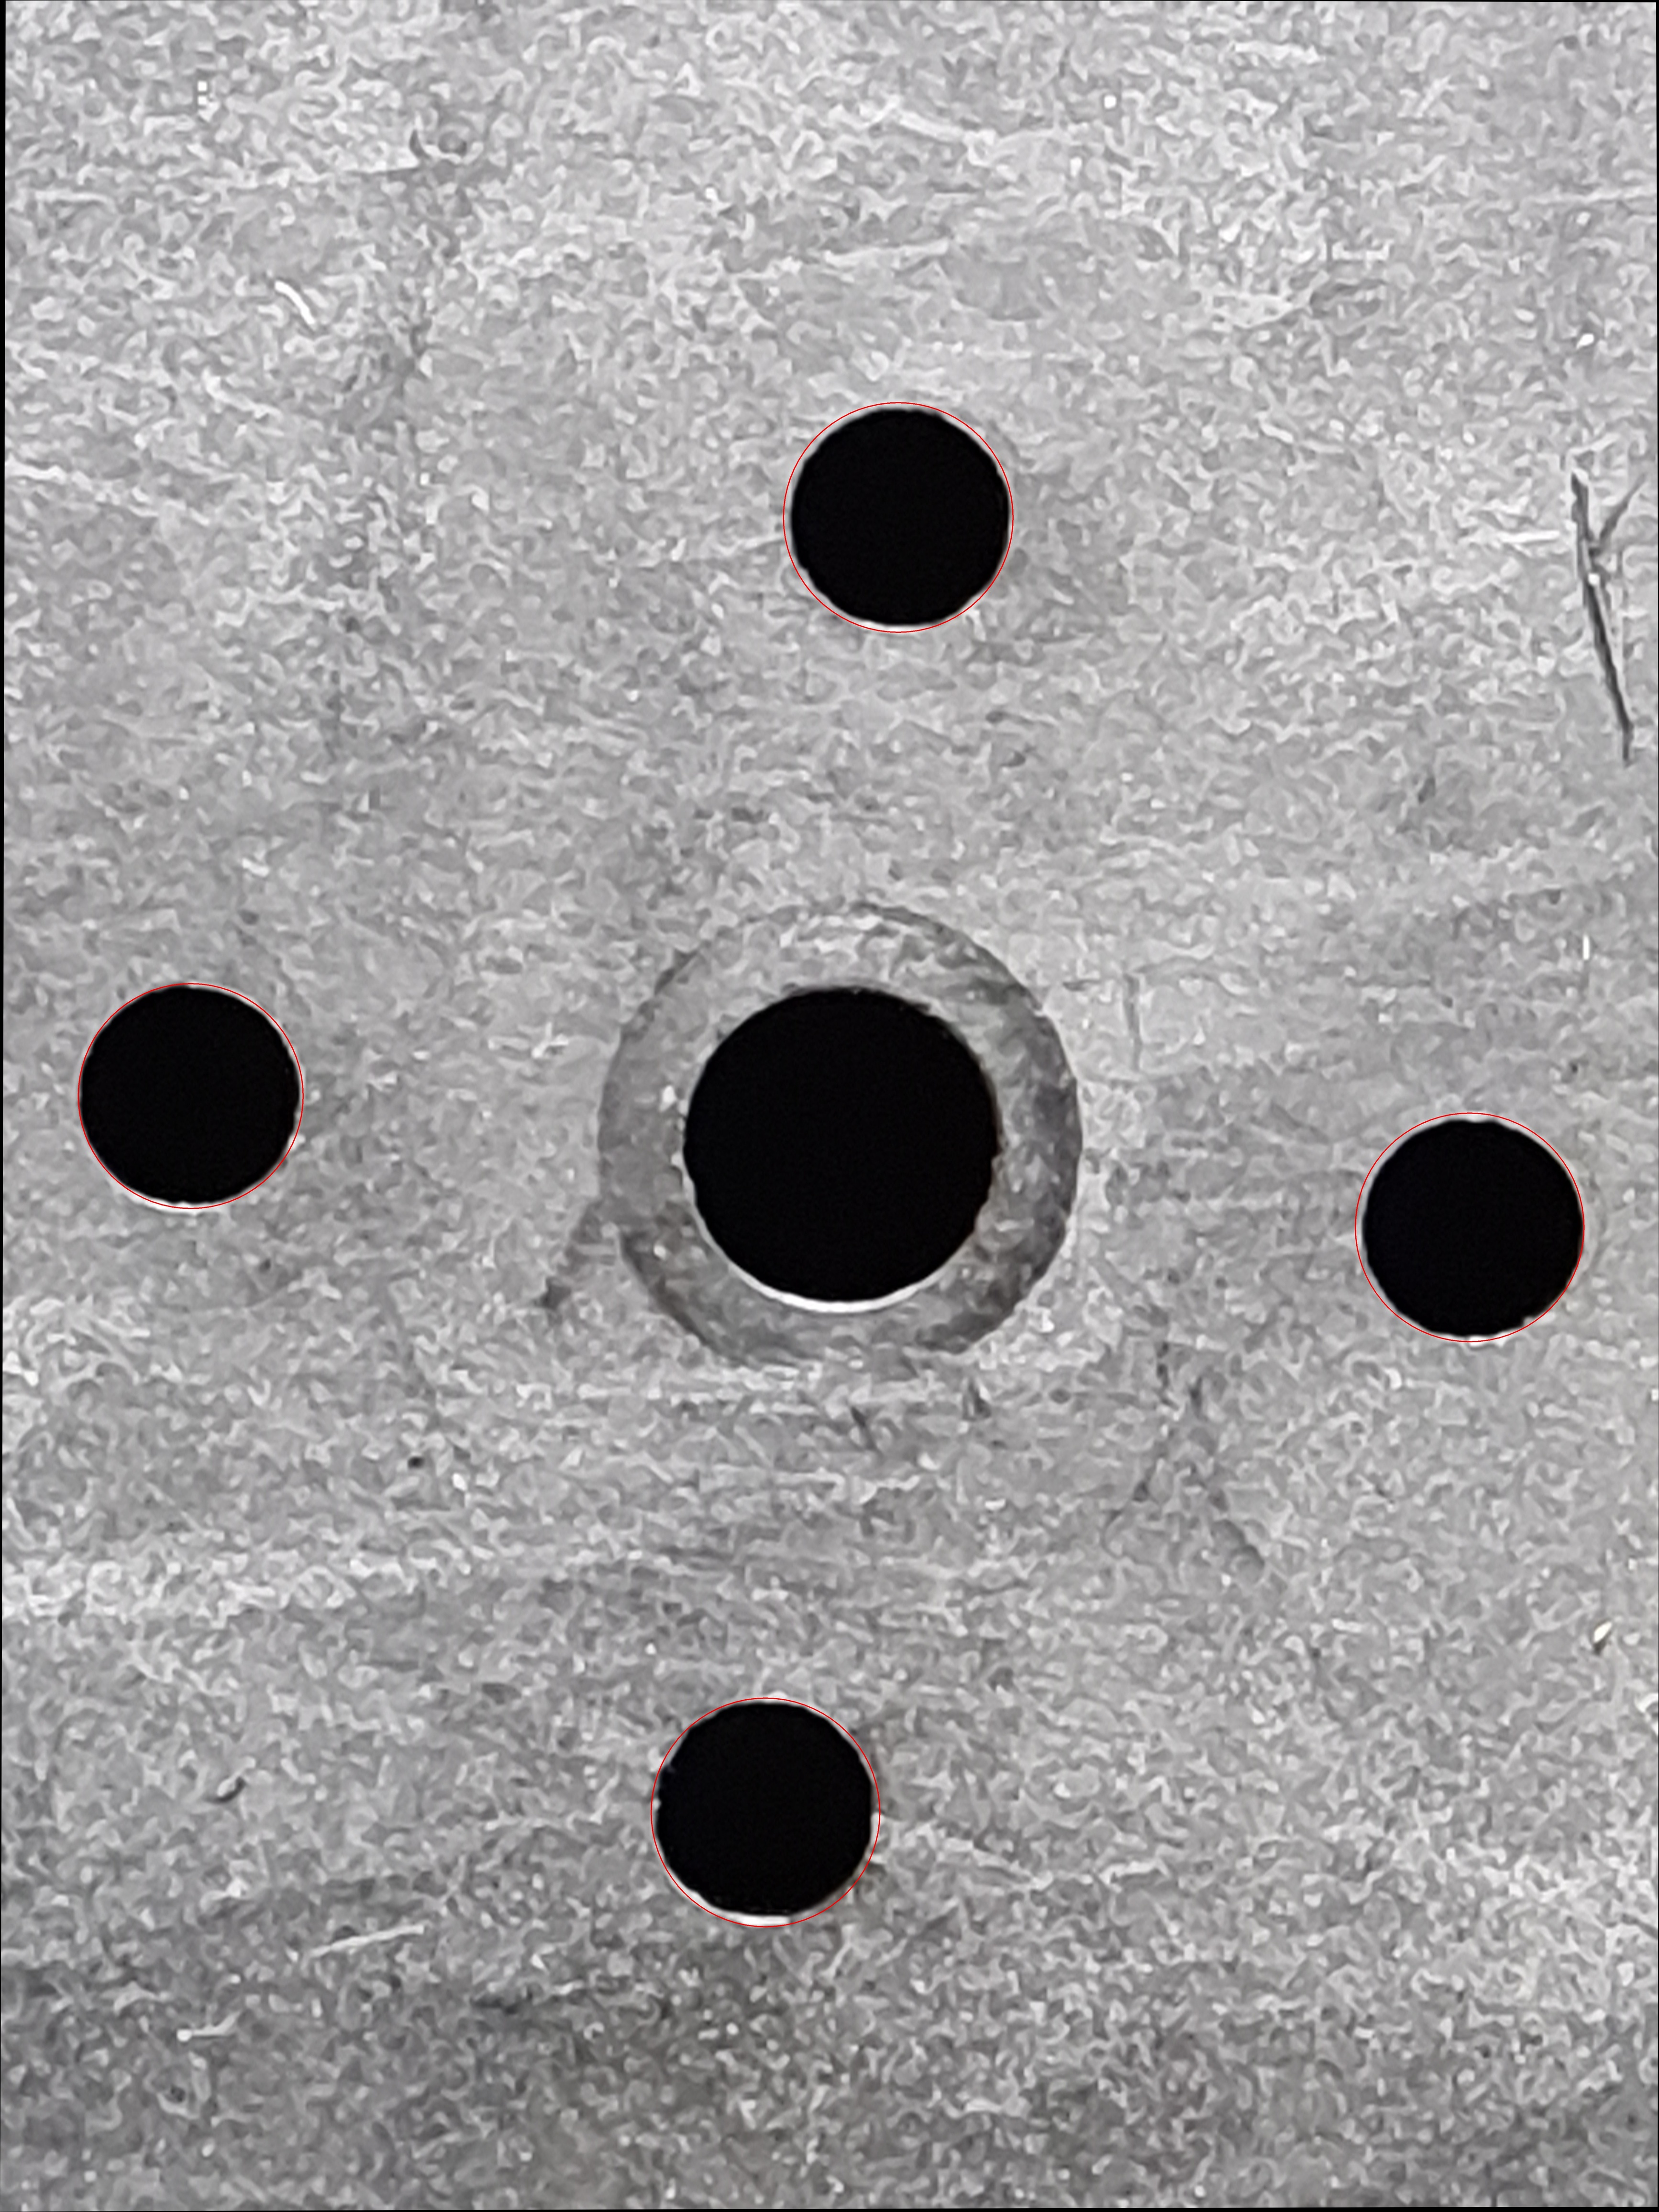 Calculated image holes of the previous image, there are red rings around the alignment holes